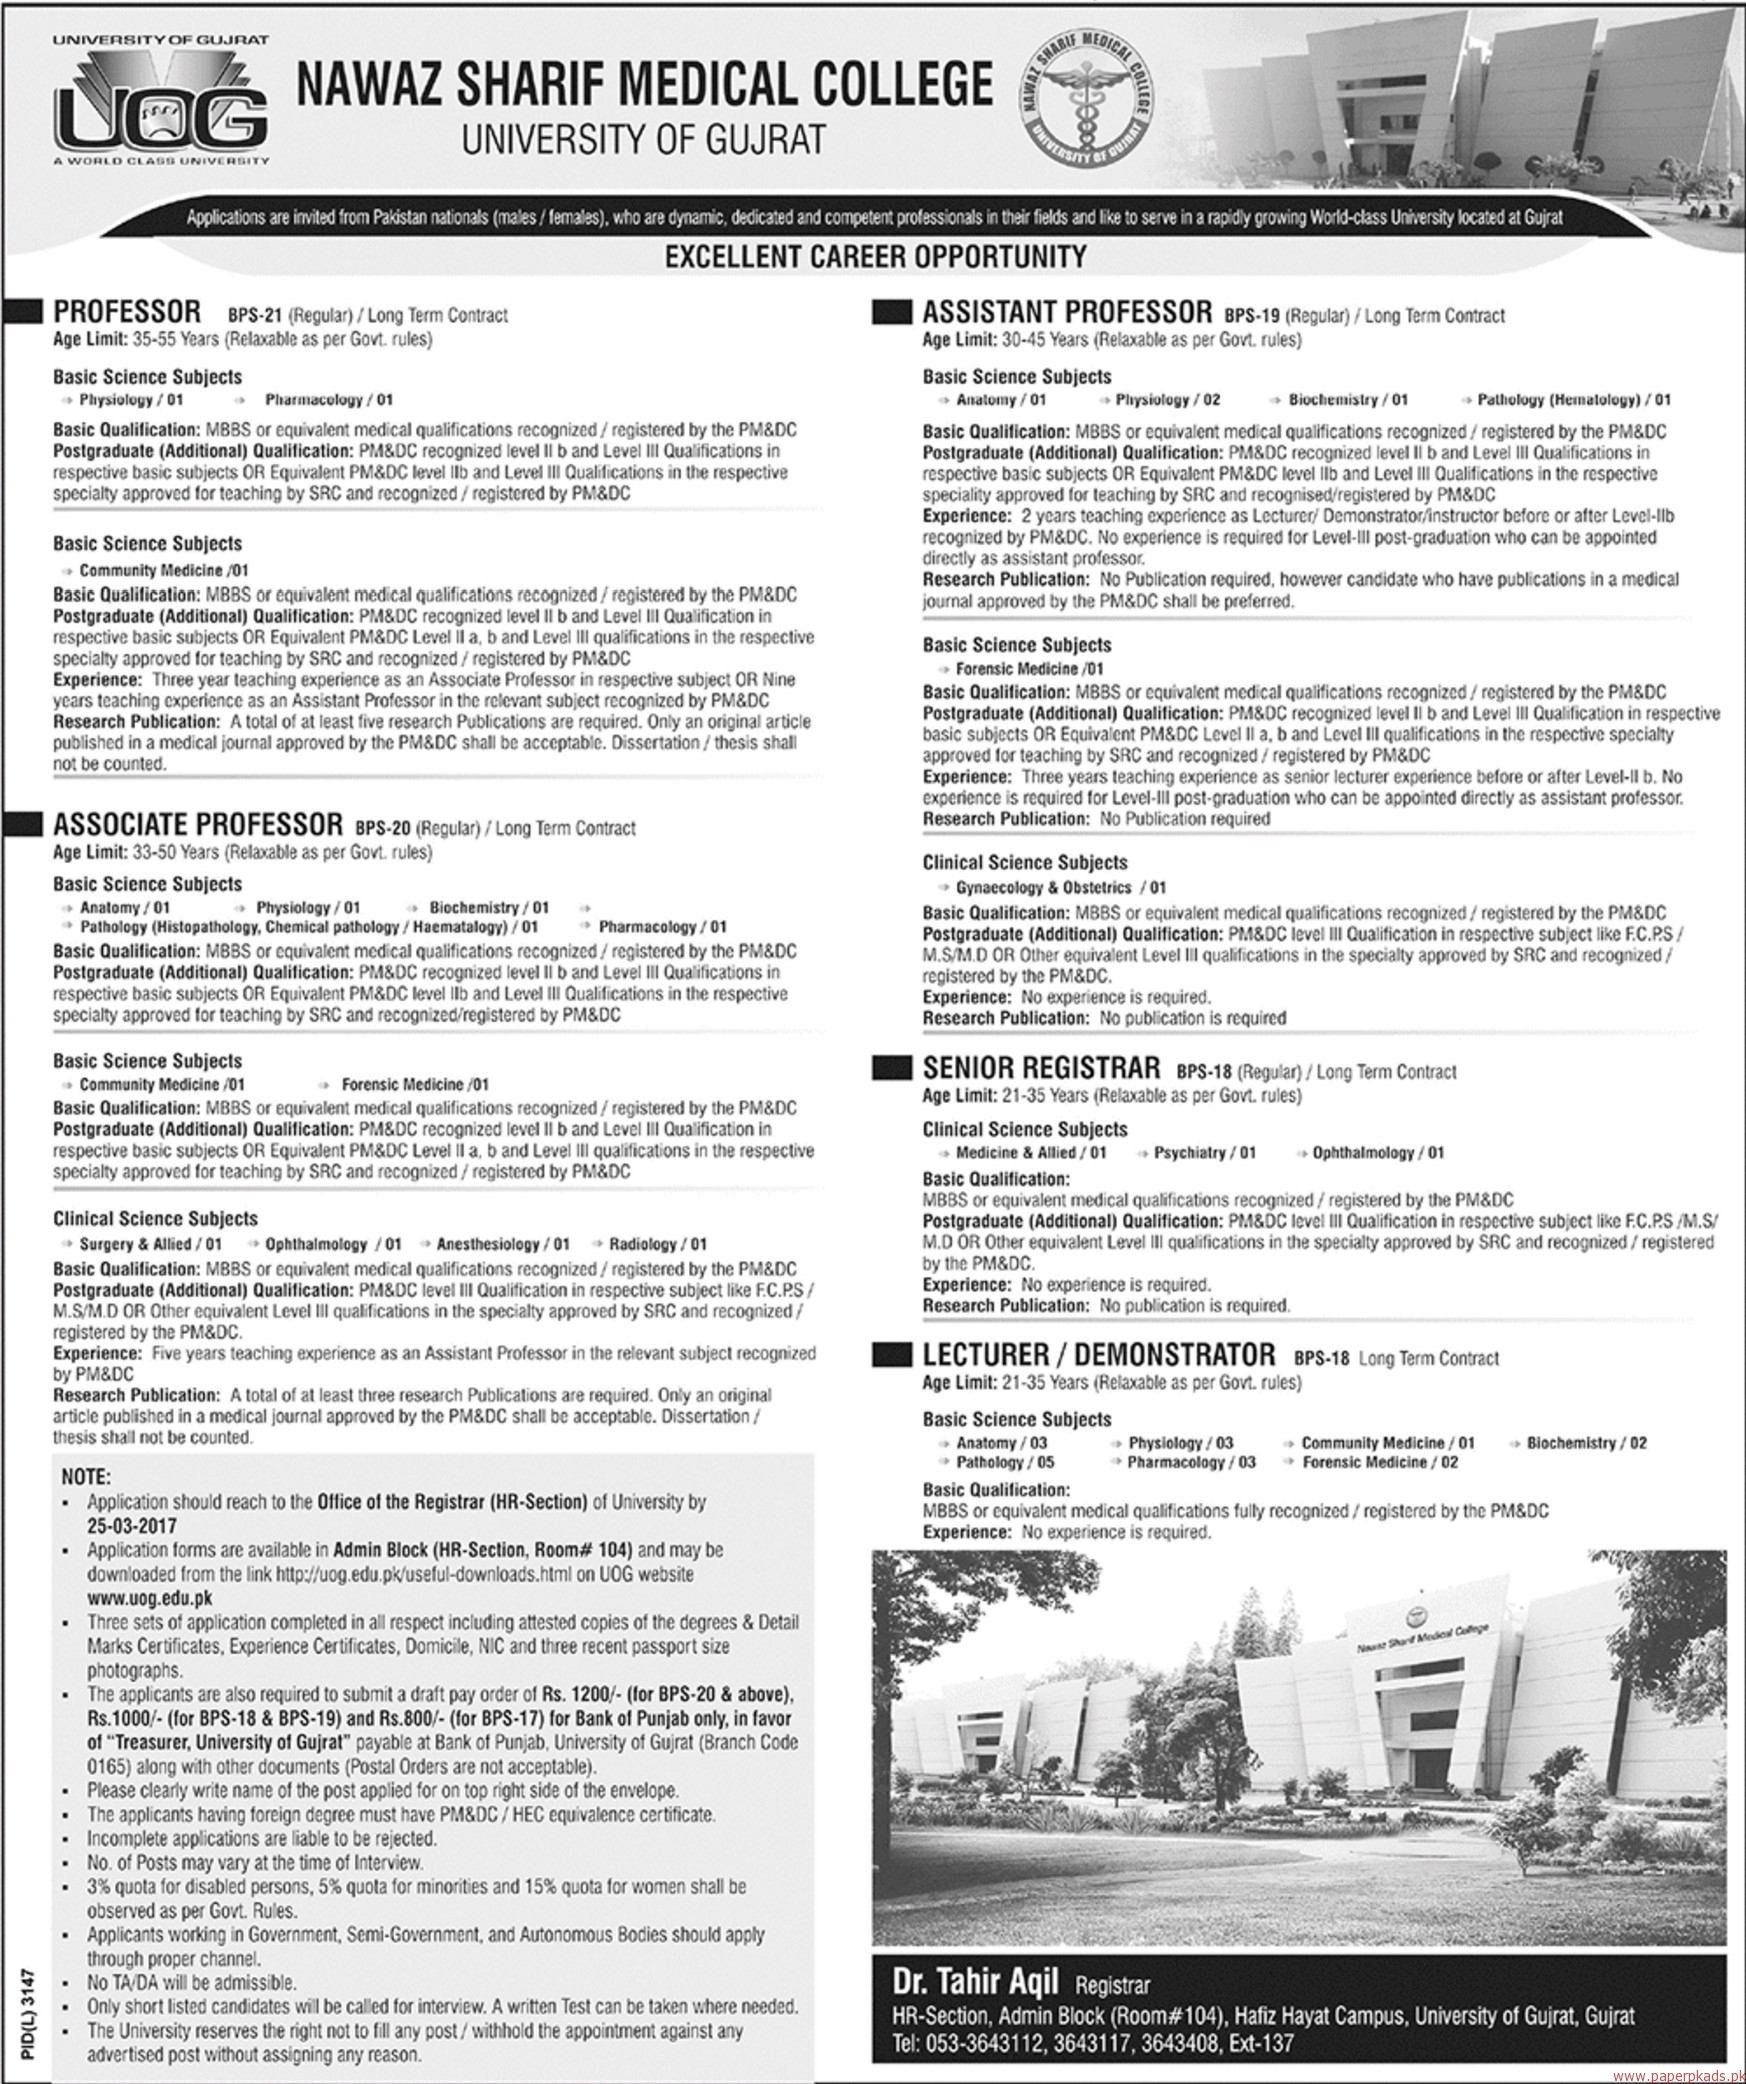 nawaz sharif medical college jobs jang jobs ads  related articles